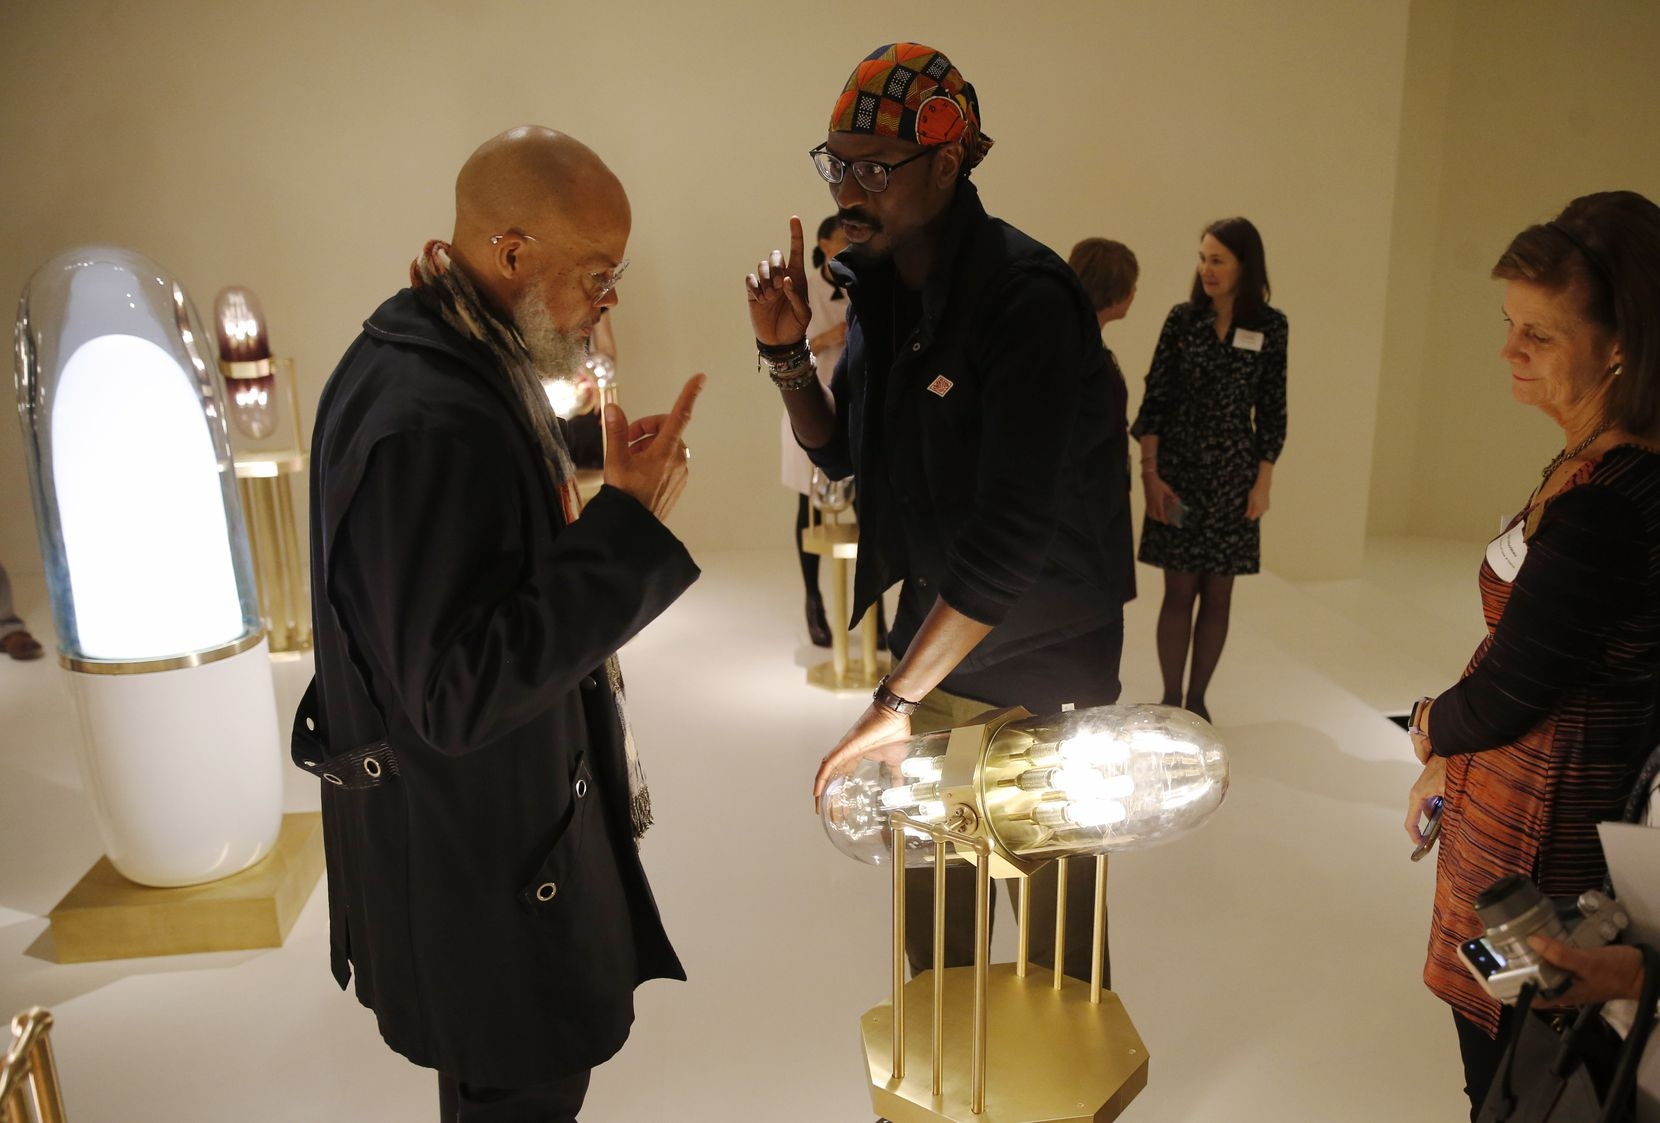 """Artist Ini Archibong (center) explains how his piece called """"theoracle"""" works to Jackson (left, who goes by one name) during a preview event for """"Speechless: Different by Design"""" on Tuesday, Nov. 5, 2019."""